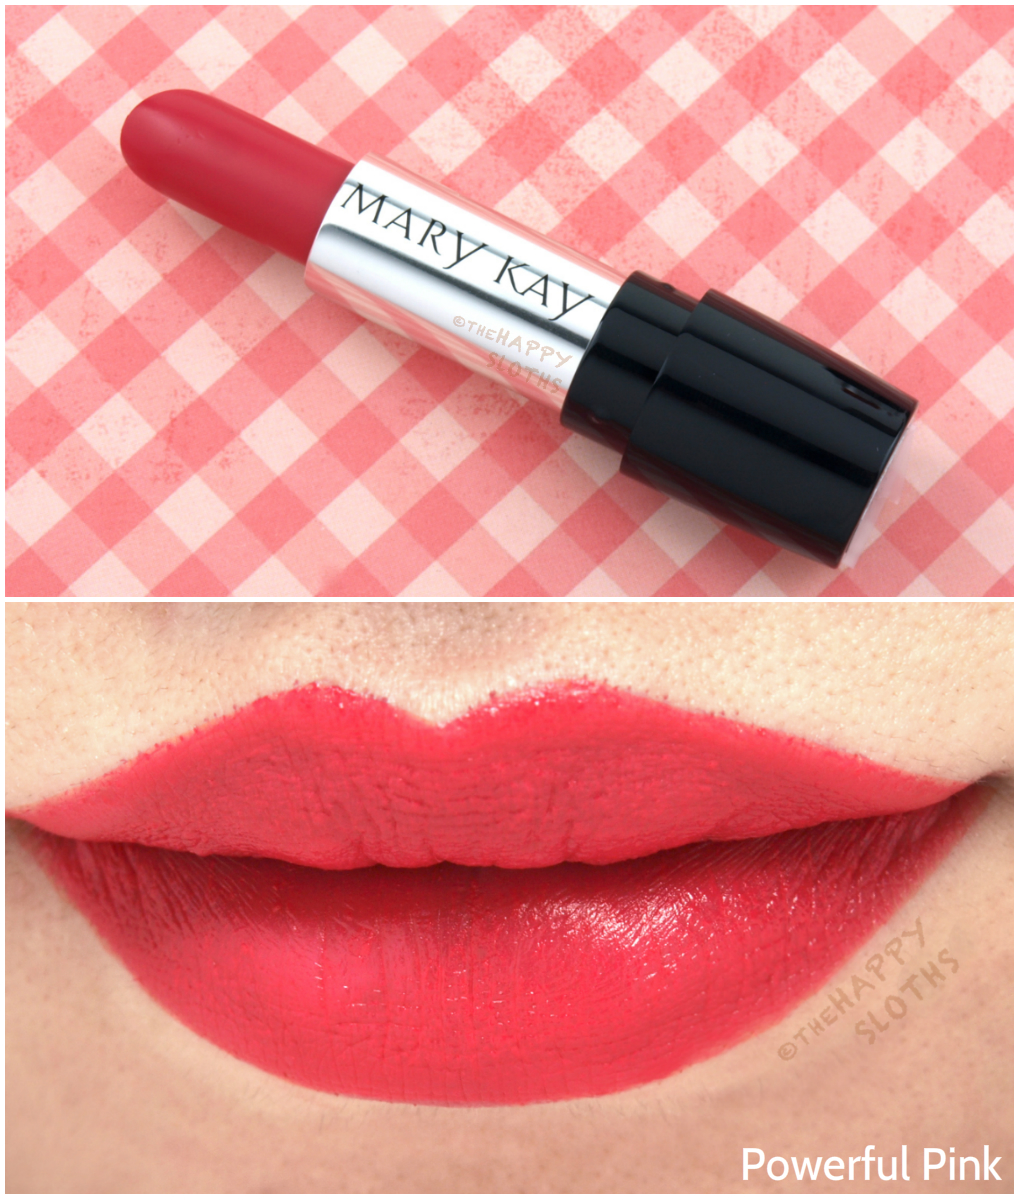 Mary Kay Fall 2016 Gel Semi Matte Lipsticks Review And Swatches Lipstik Lipstick In Powerful Pink